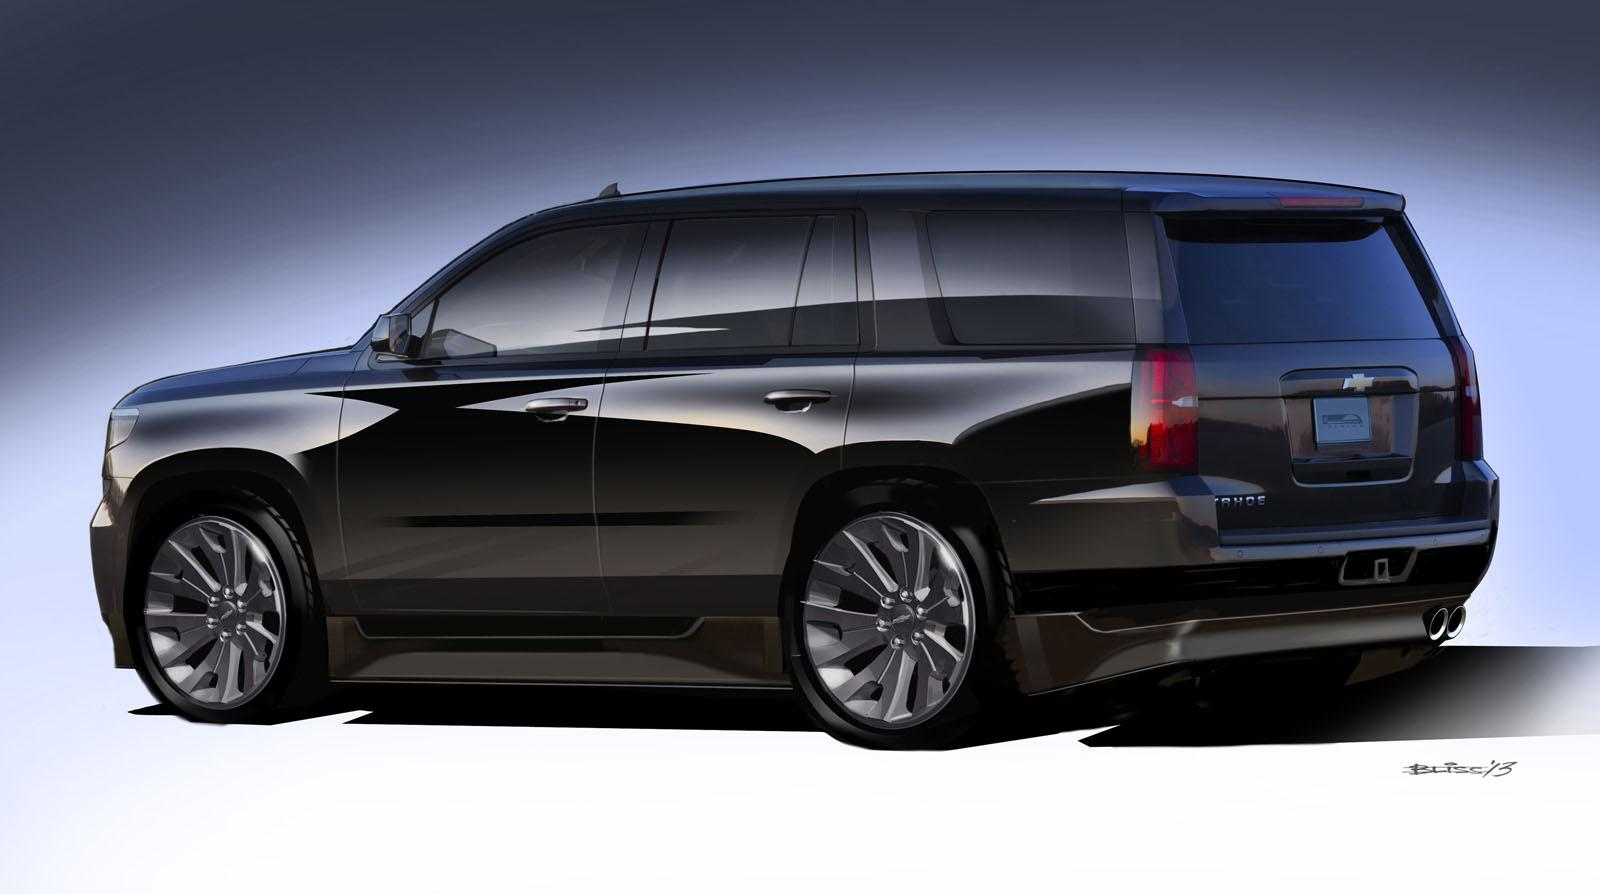 info chevrolet reviews photo news for car first drive and photos original sale s review tahoe driver